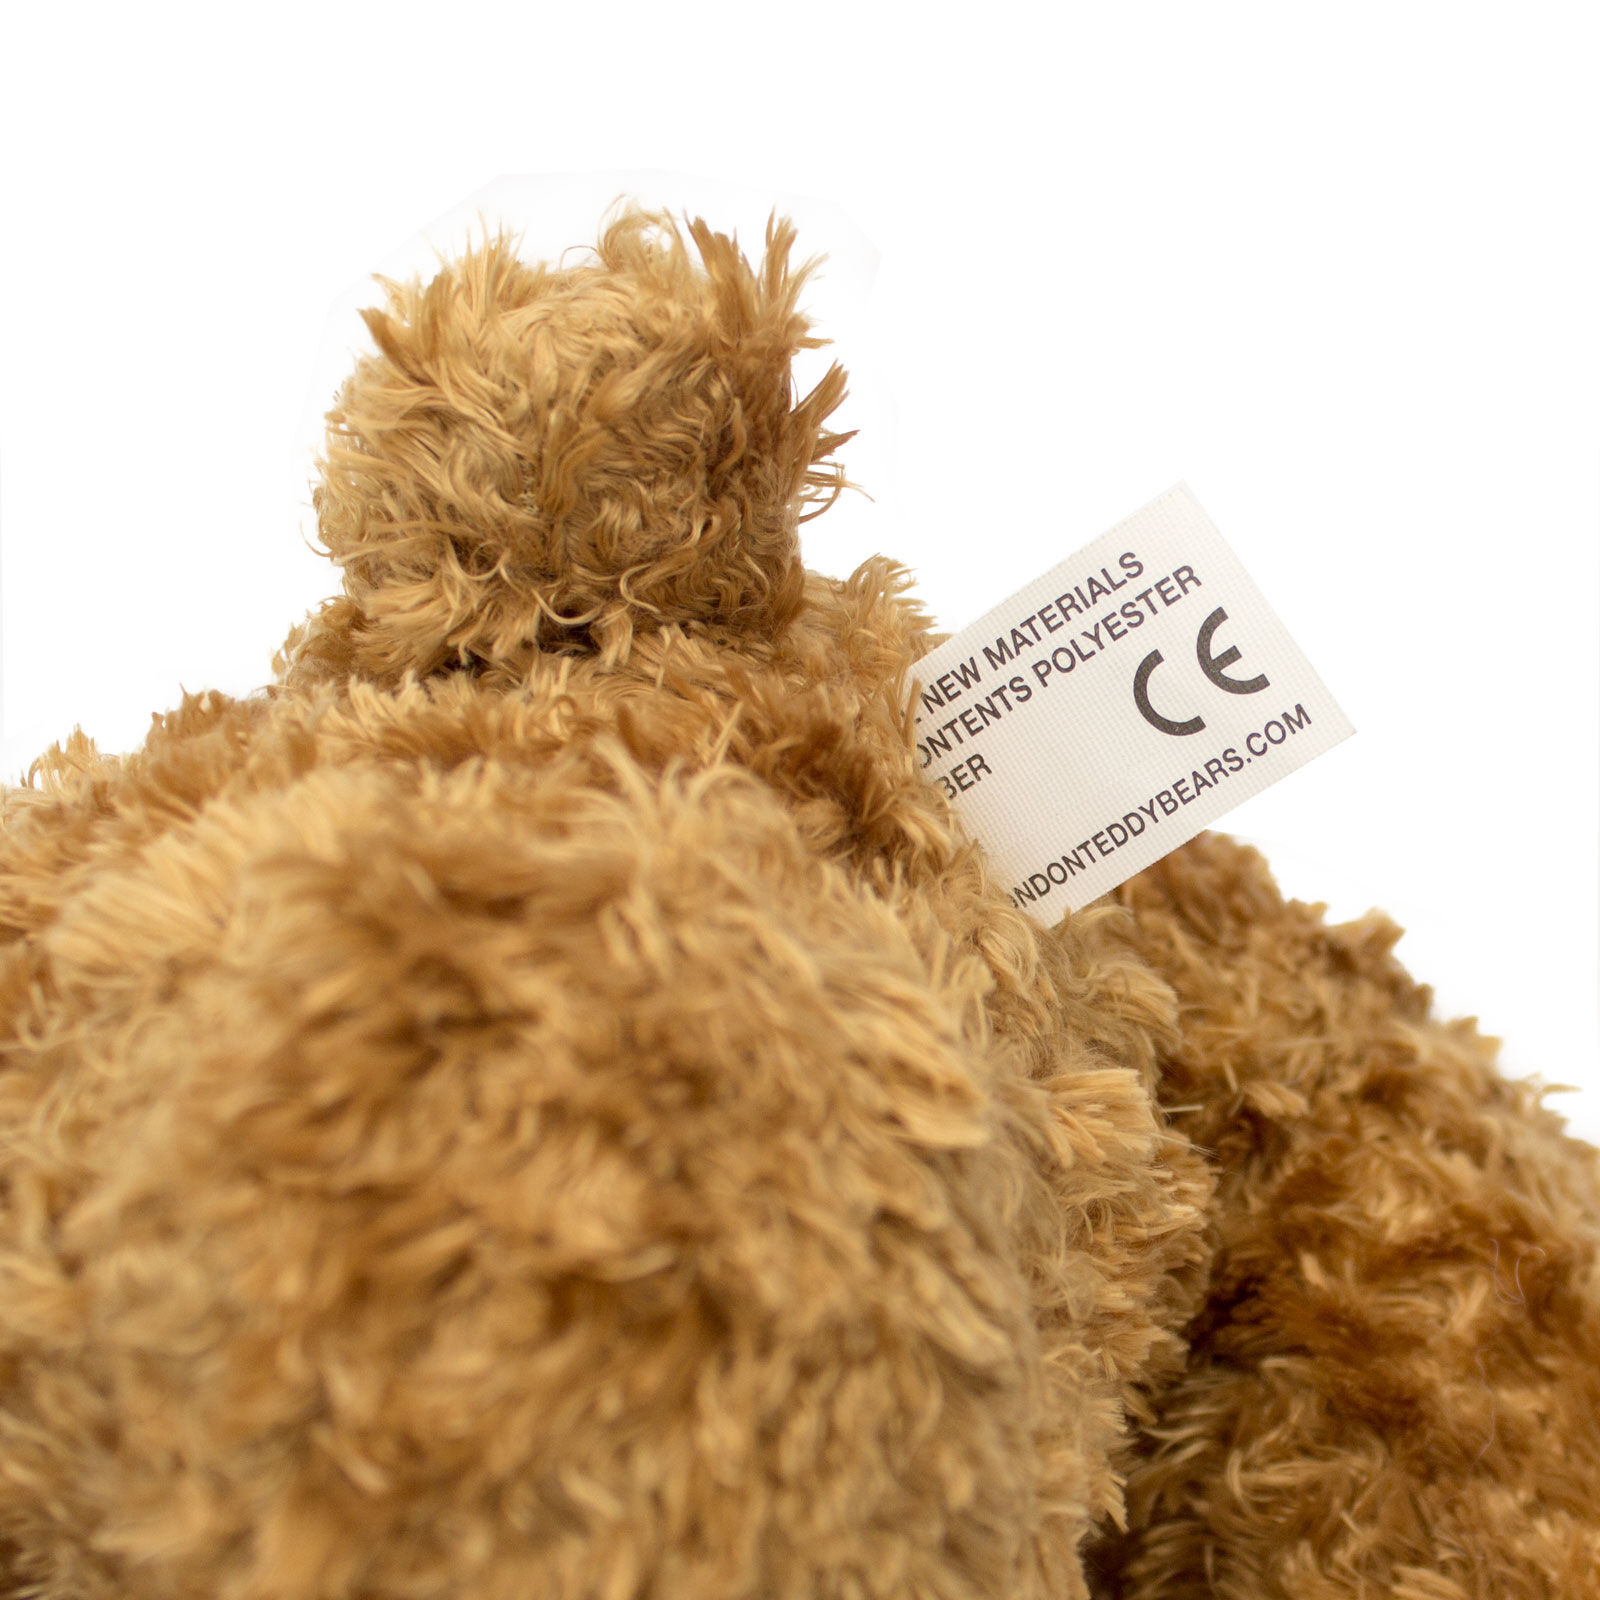 NEW NEW NEW - BEST RADIATION ONCOLOGIST IN THE WORLD - Teddy Bear Gift Present Award d123e6